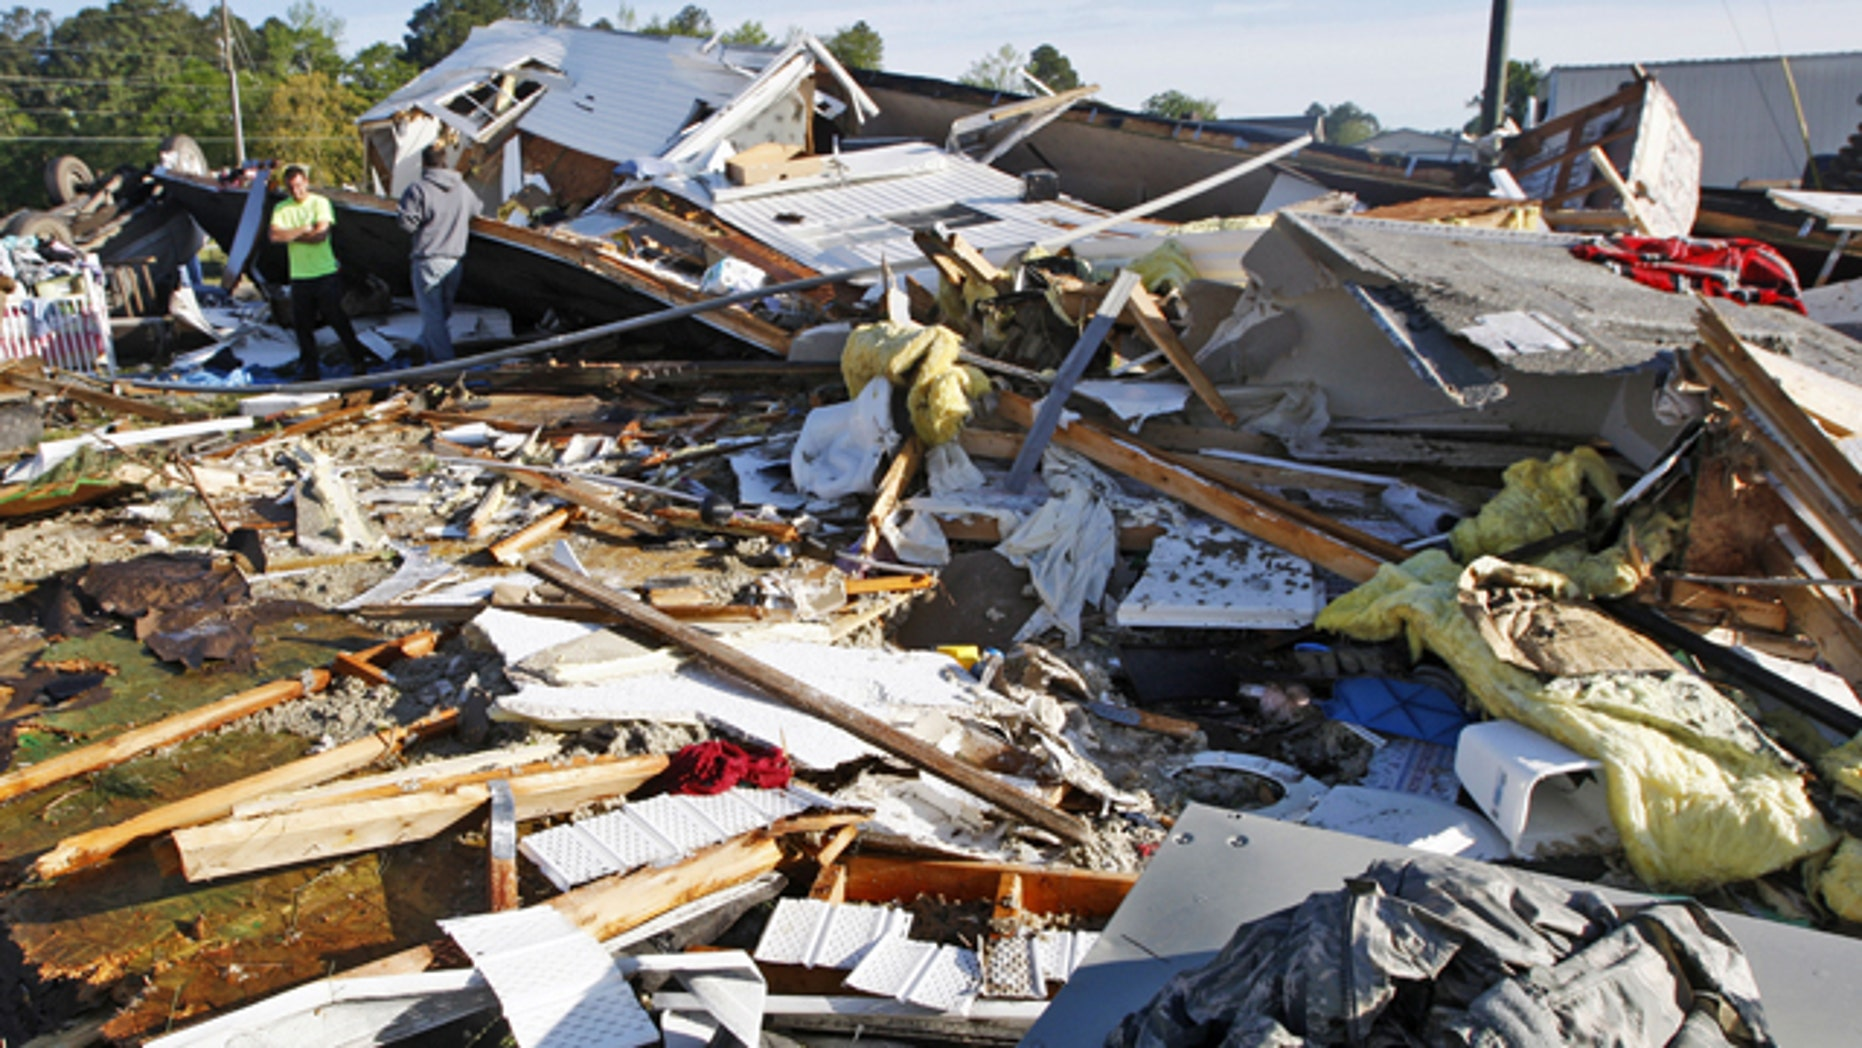 April 26, 2014: People stand among the remains of a mobile home that was destroyed when a tornado touched down along Black Jack-Simpson Road  in Greenville, N.C. the previous day.  (AP Photo/The Daily Reflector, Aileen Devlin)